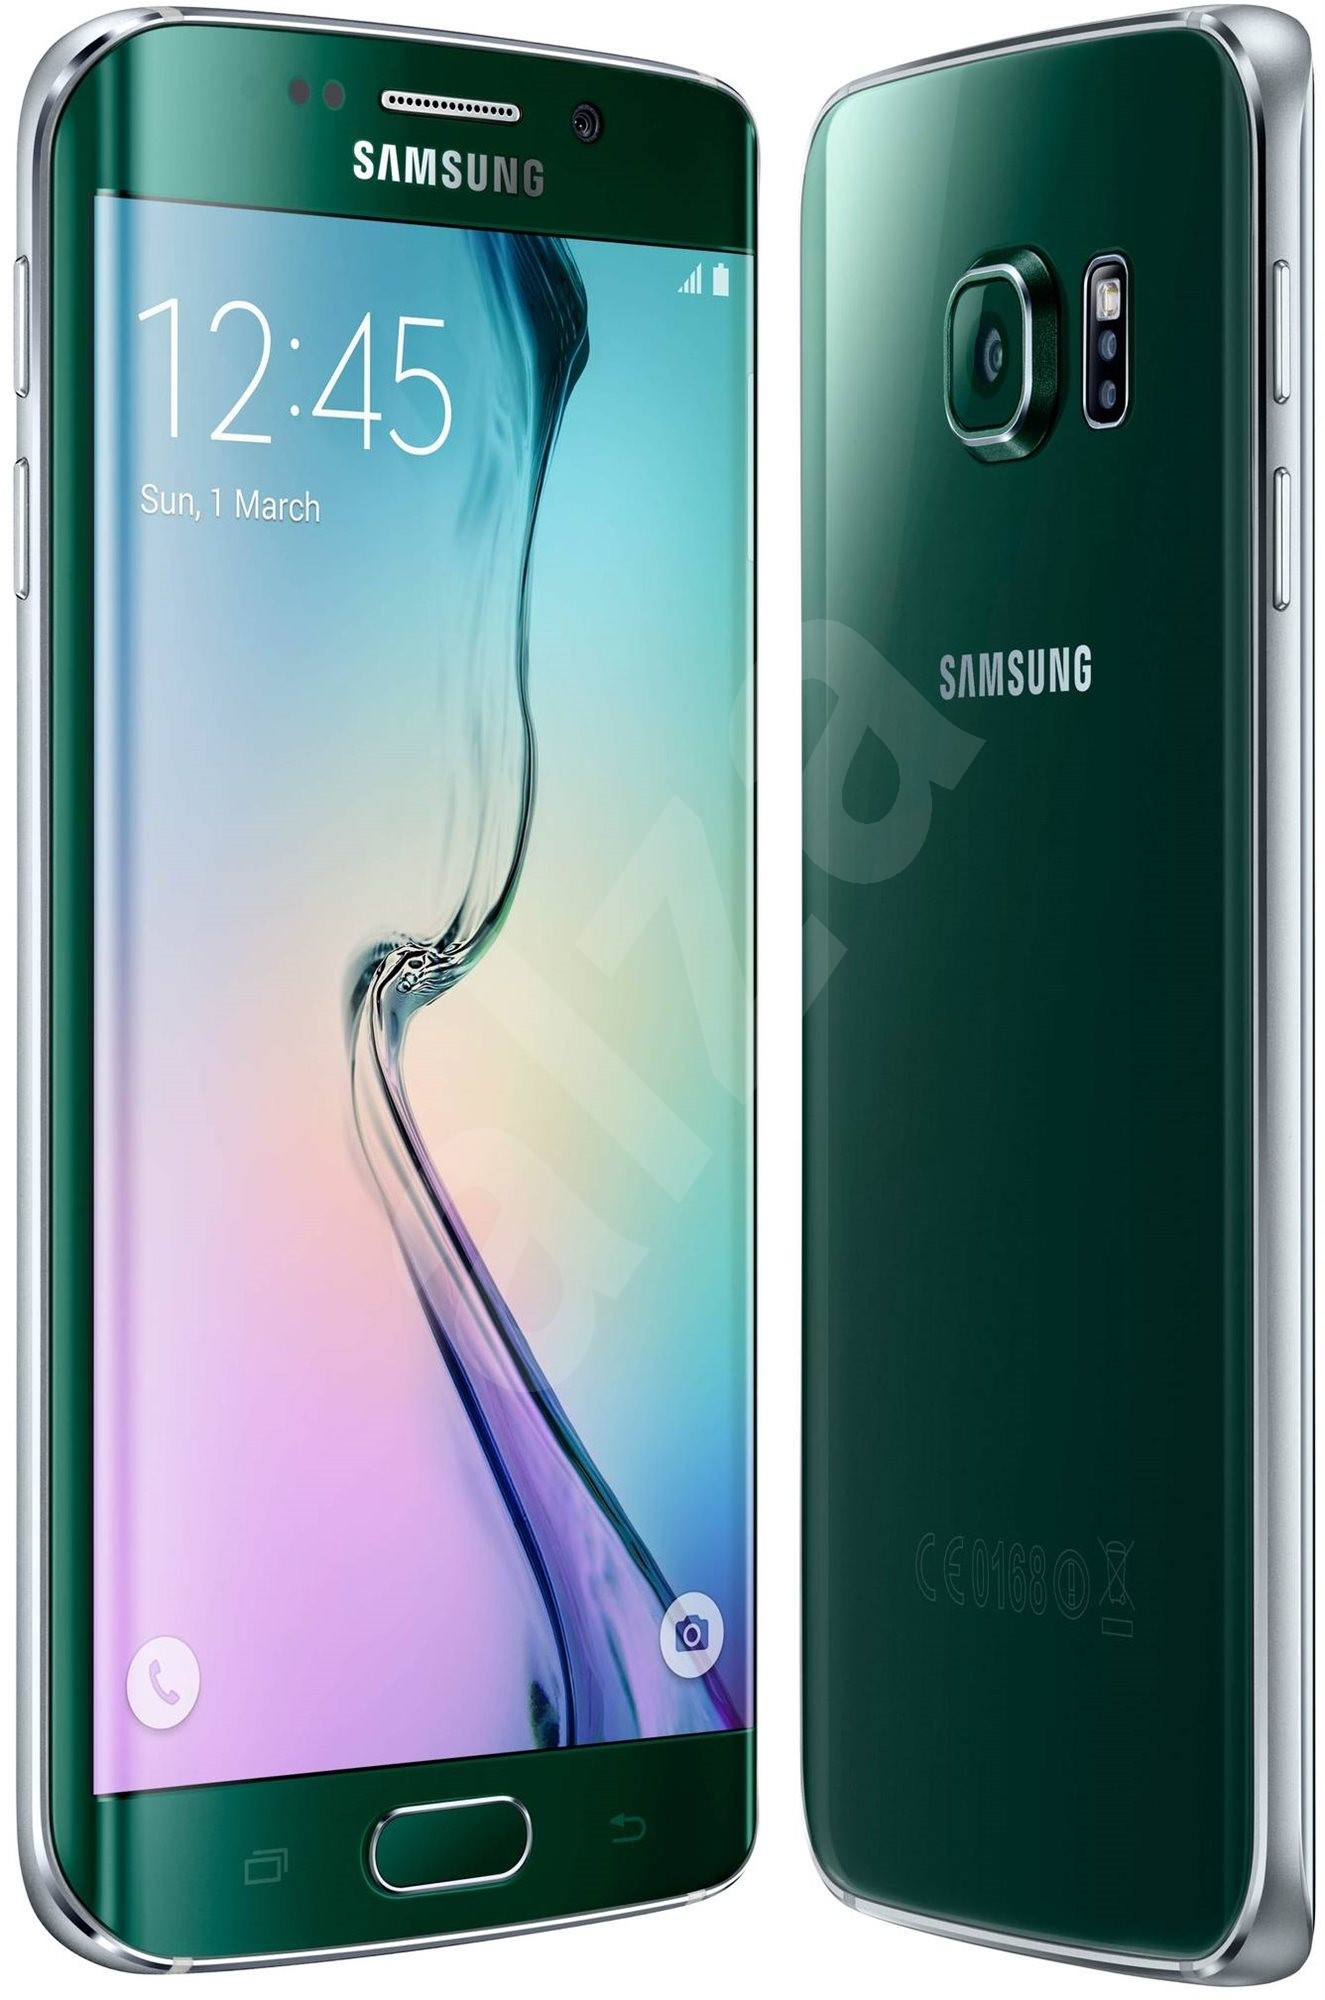 samsung galaxy s6 edge sm g925f 64gb green emerald mobiln telefon. Black Bedroom Furniture Sets. Home Design Ideas